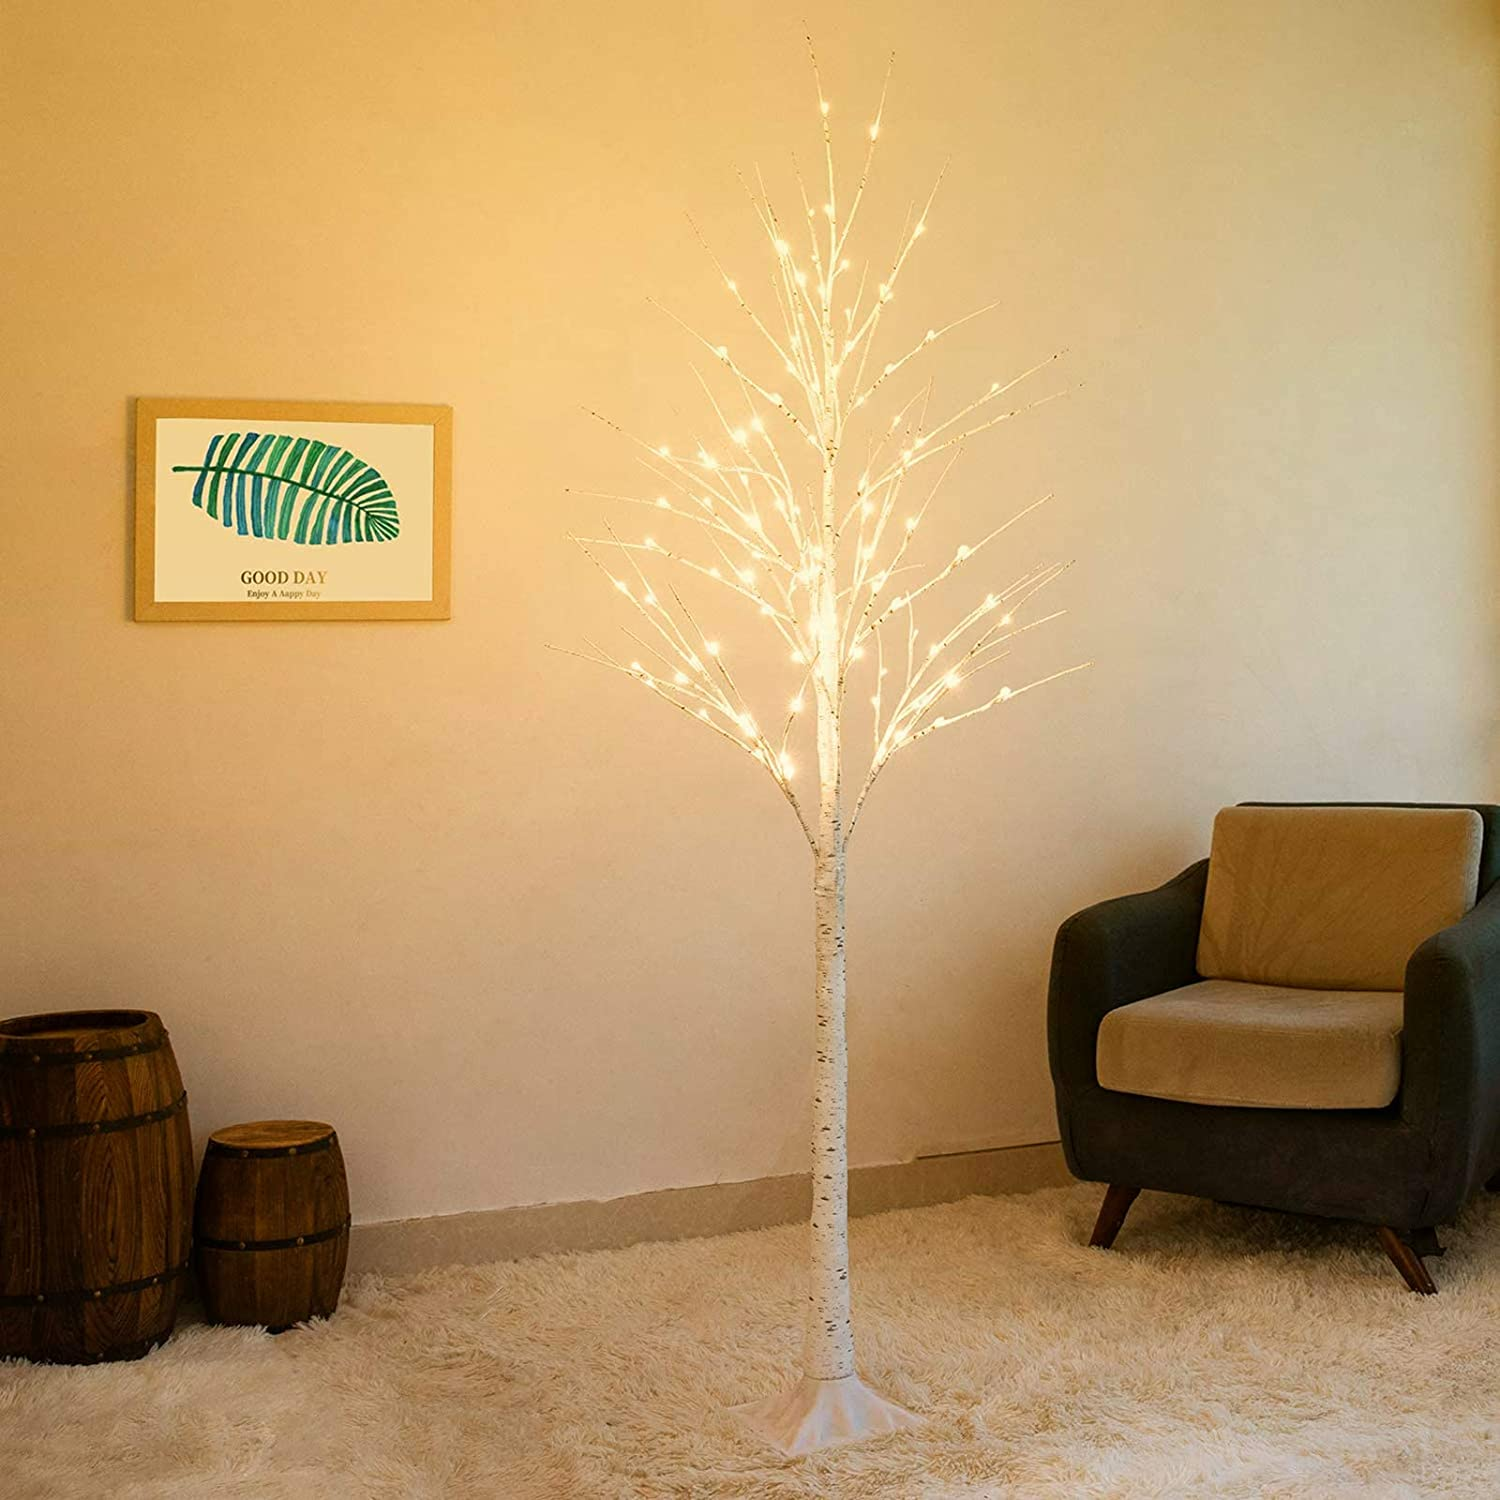 Bolylight LED Birch Tree 6ft 96L LED Lighted Tree Christmas Decorations Outdoor and Indoor Use Warm White